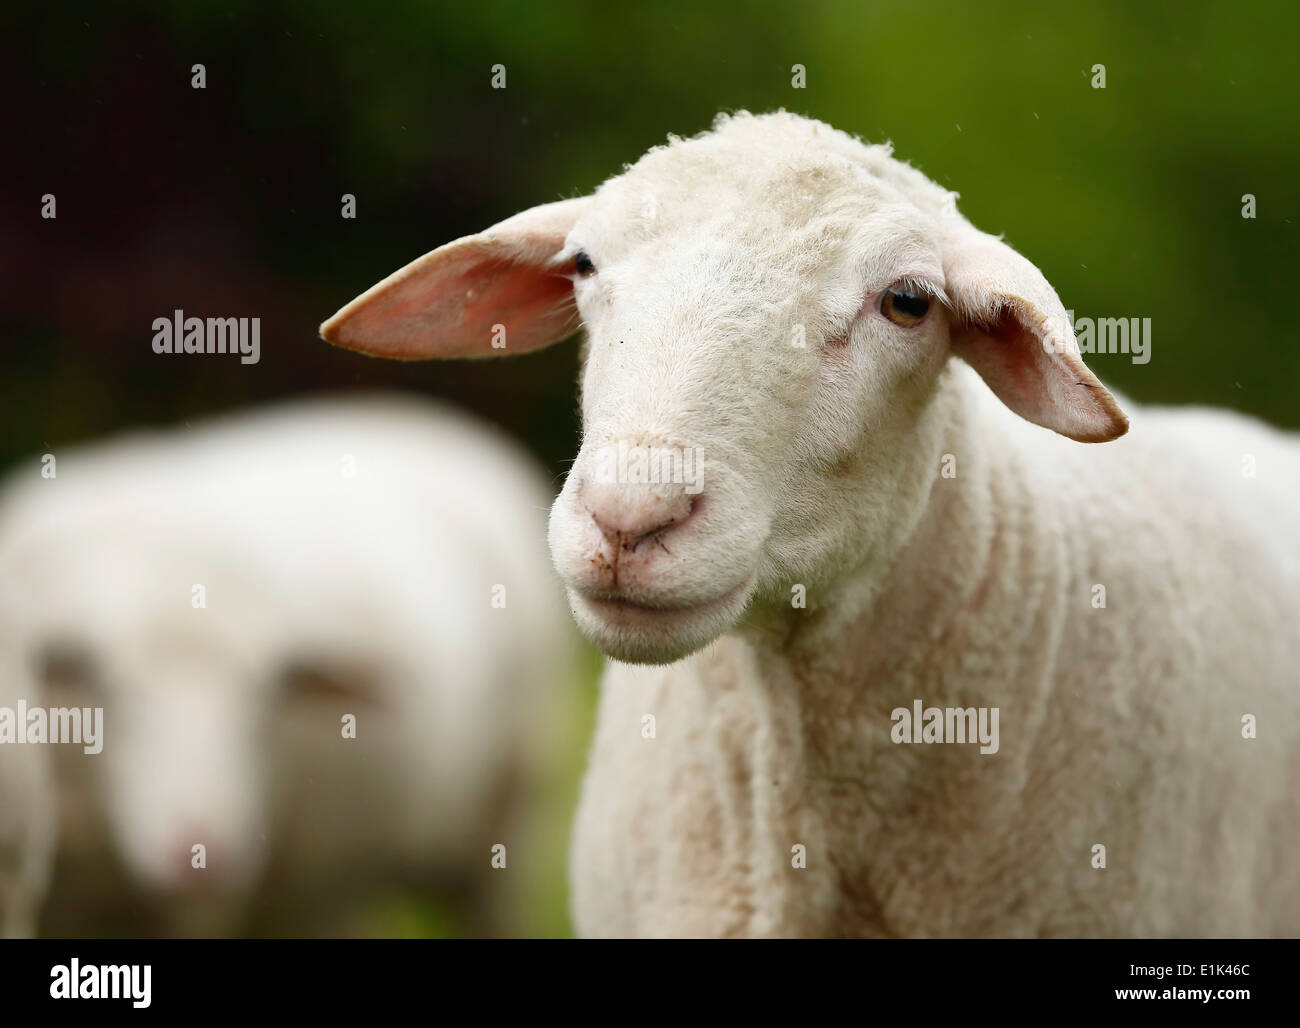 Bleating domestic sheep, Ovis orientalis aries - Stock Image